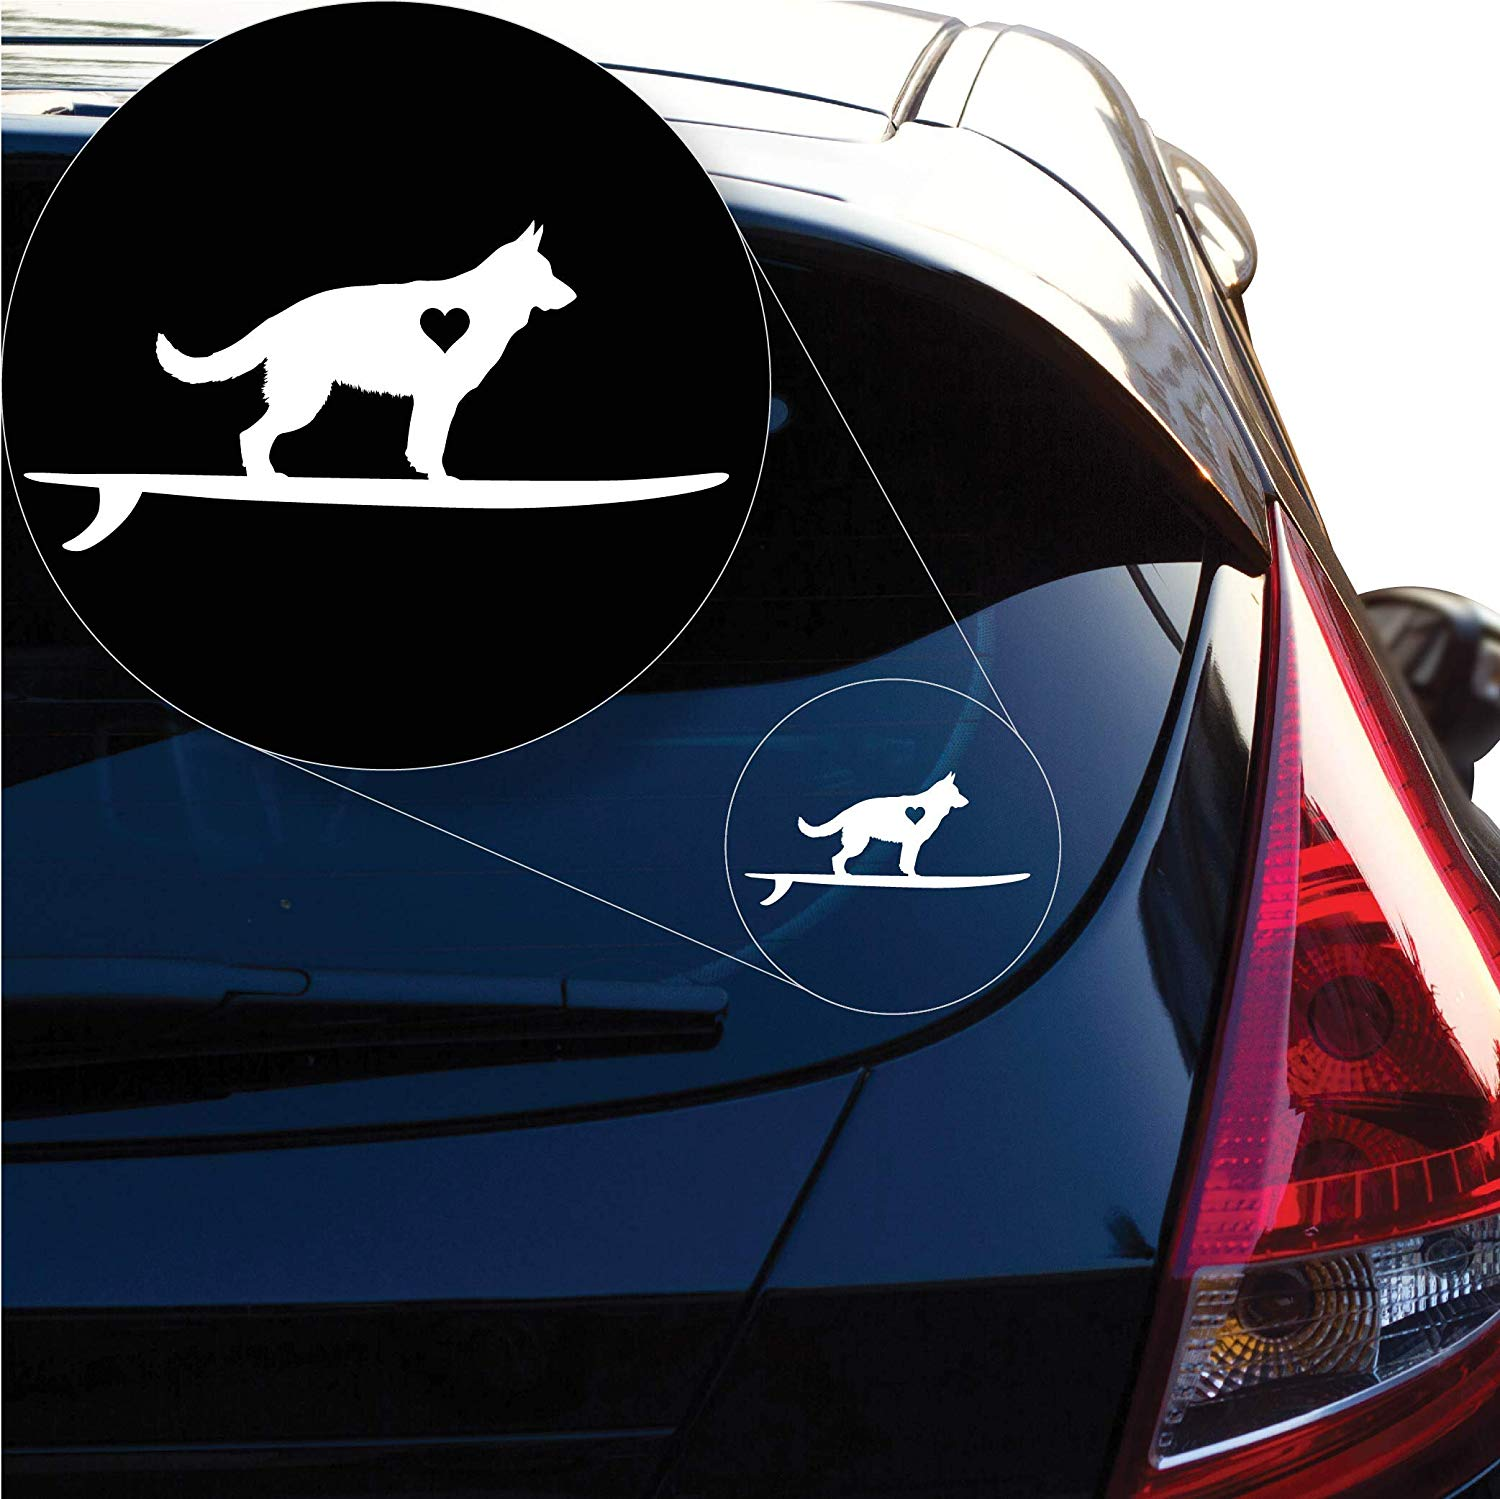 German Shepherd on Board Decal Sticker for Car Window, Laptop and More. # 1264 (3 X 6.3, White)